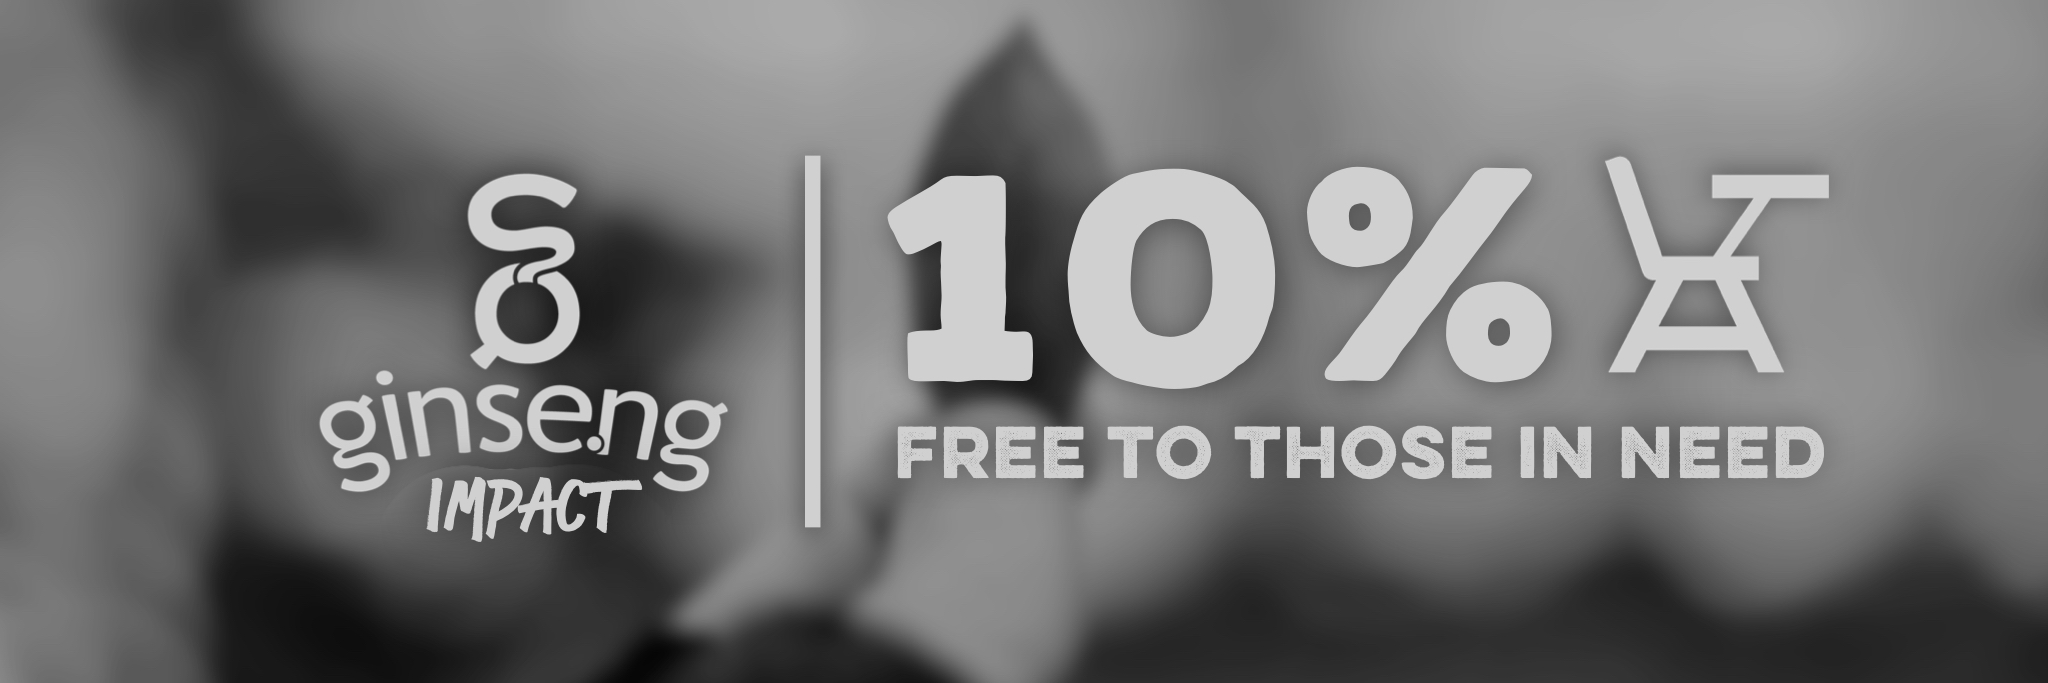 Ginseng Impact 10% Free to Those in Need